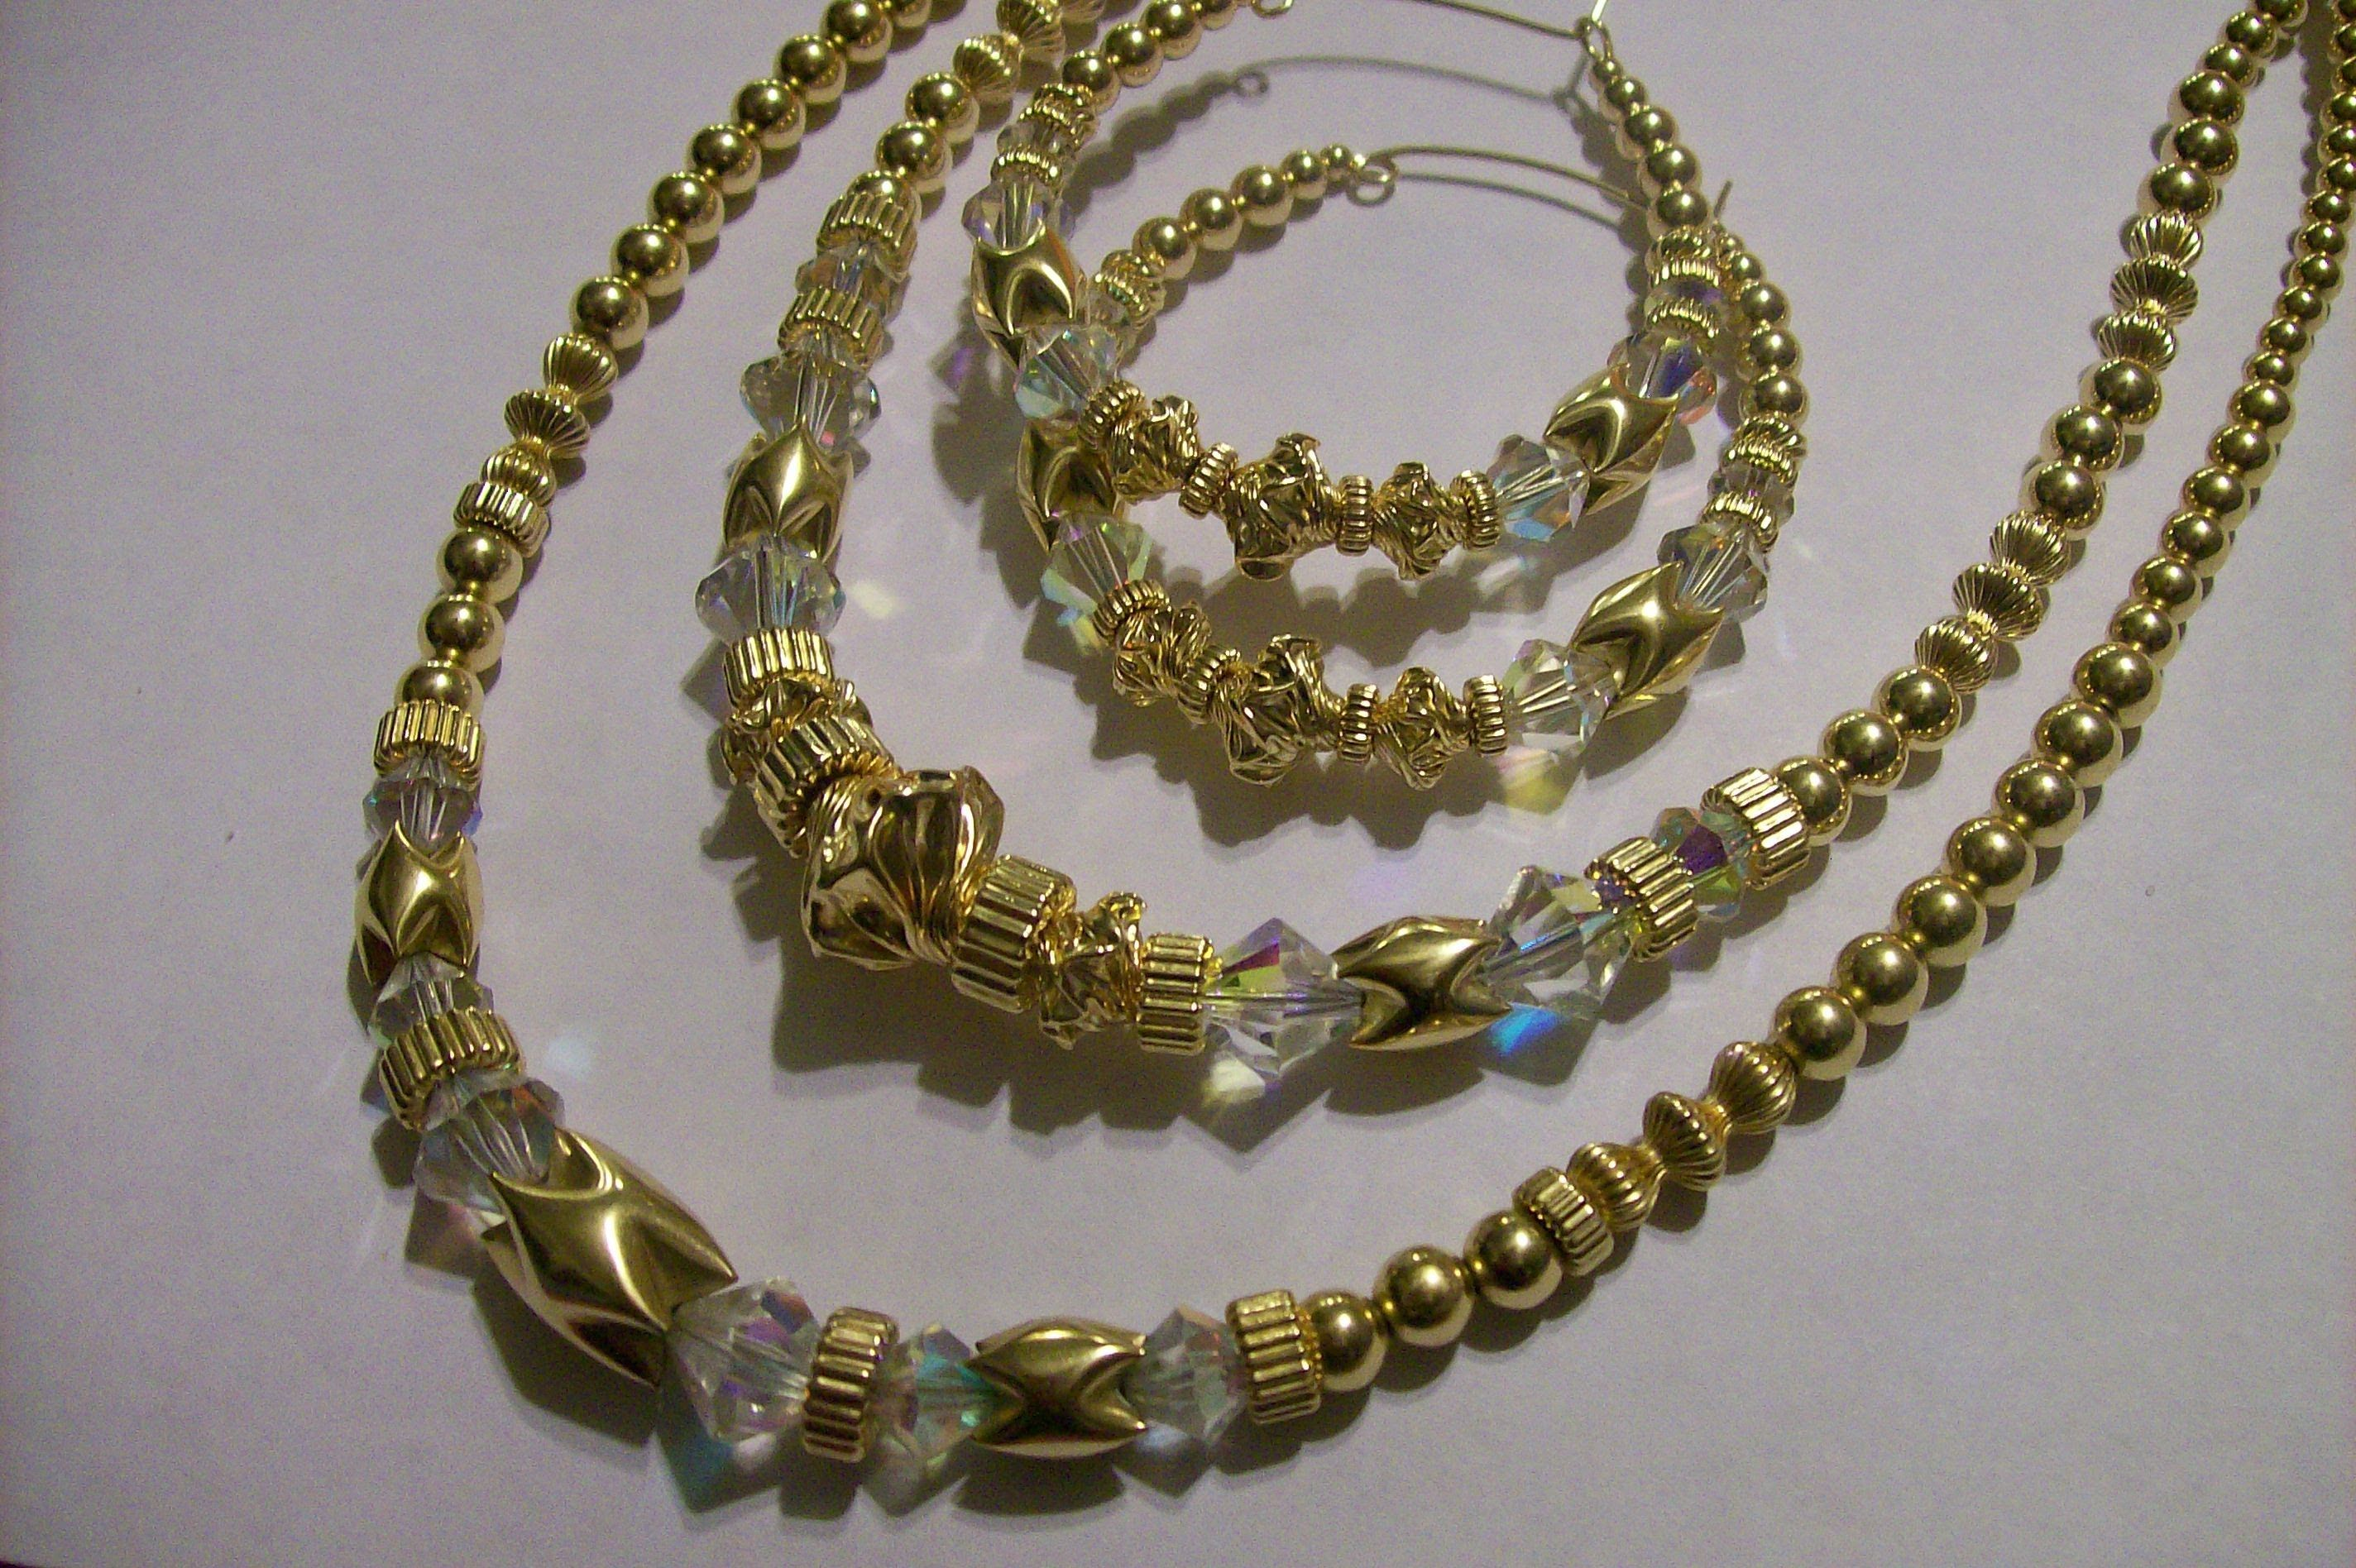 bead splendor jewelry design with of necklace classes w series class wire making deb a wrapping beads love